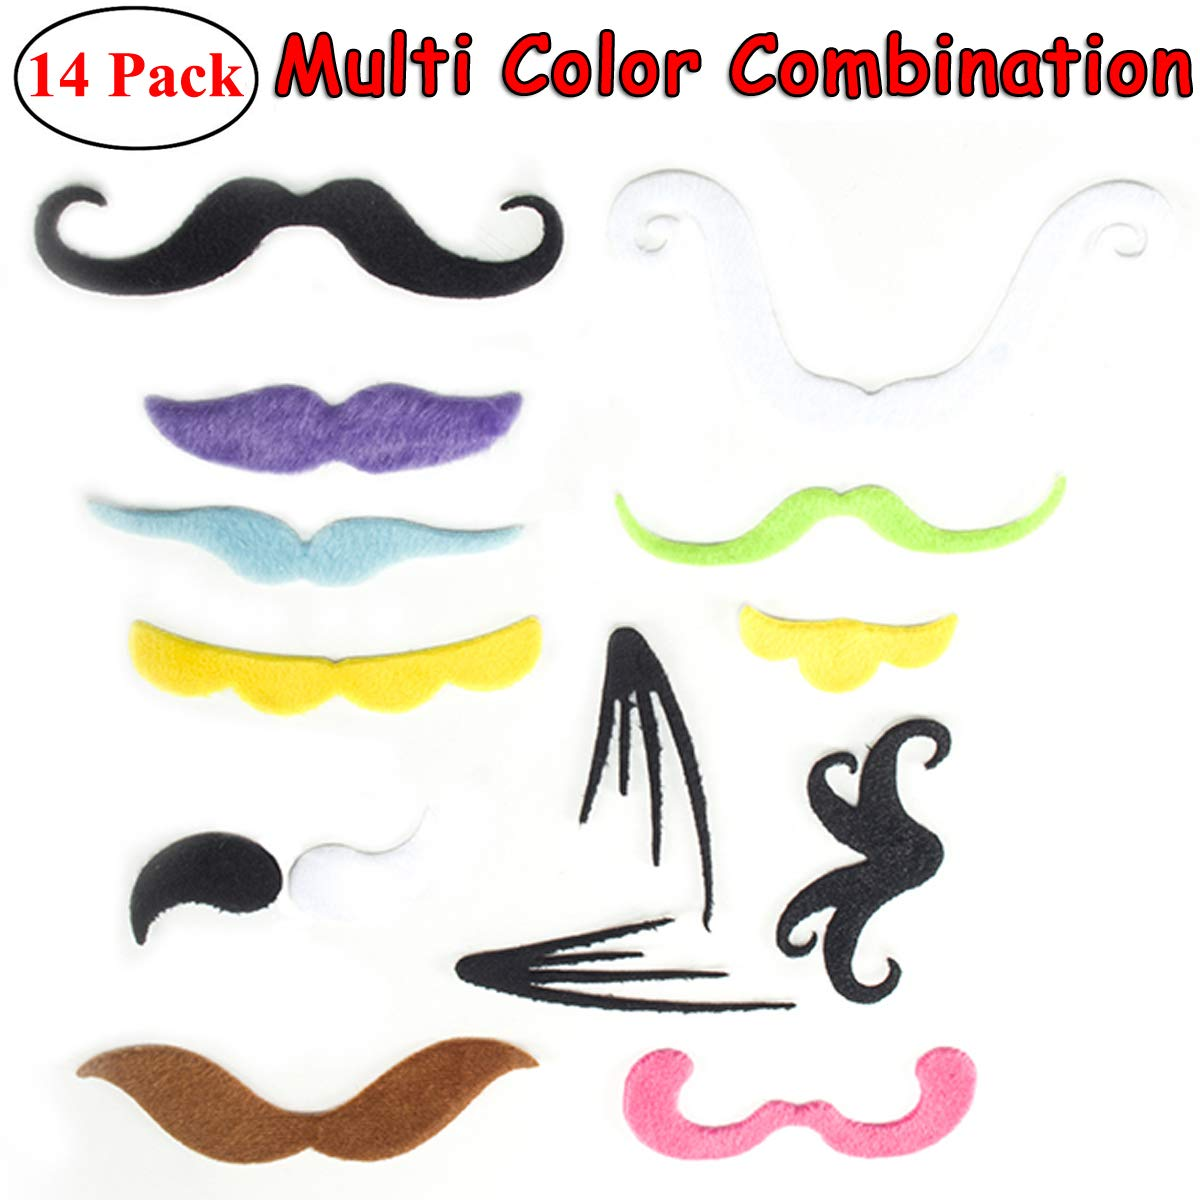 14 Pcs Novelty Fake Mustaches Self Adhesive Fake Mustaches for Masquerade Party and Performance